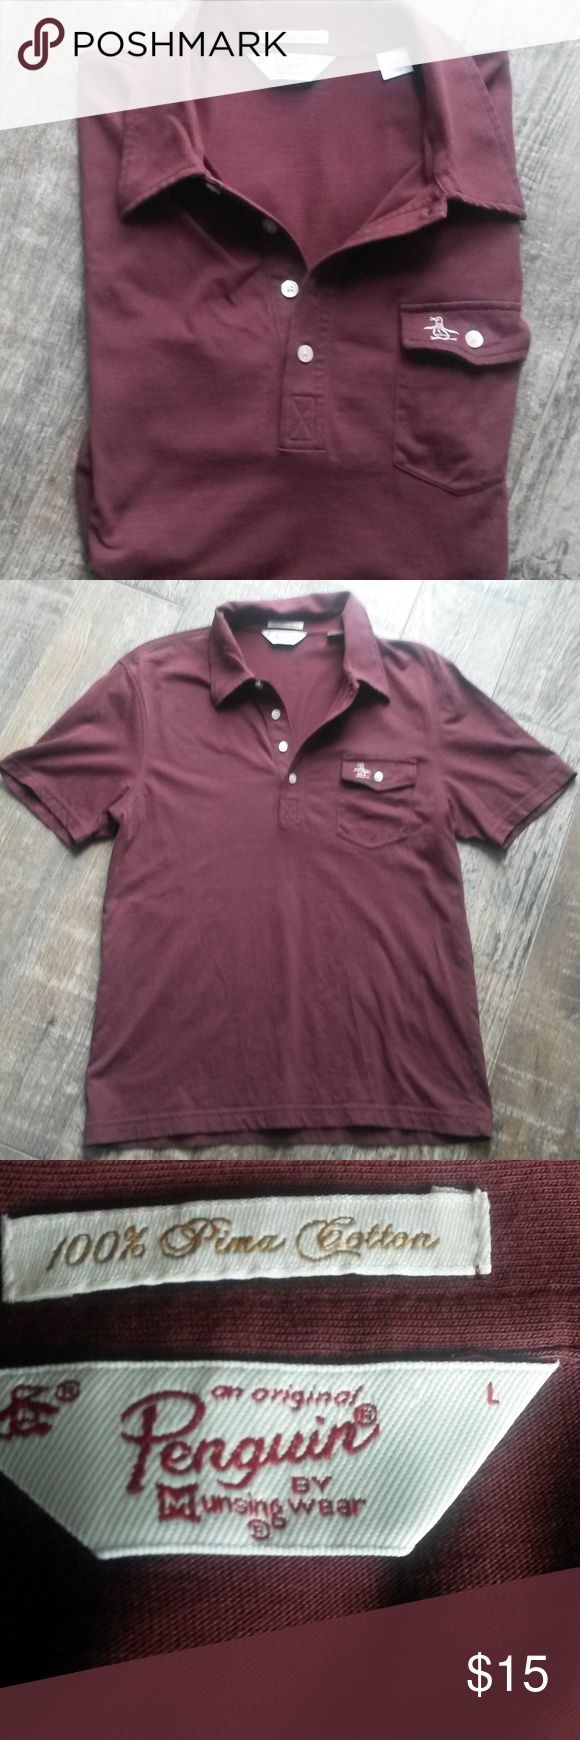 """Penguin by Munsing Wear Burgundy Polo Shirt Solid burgundy Polo shirt with 1 front pocket. 60% cotton, 40% polyester. Very soft. Has a small hole from where the tag was placed in the top right hand side below the collar. Otherwise,  in good condition.   approx. measurements: length: 25"""" shoulder: 18"""" chest: 19.25"""" Original Penguin Shirts Polos"""